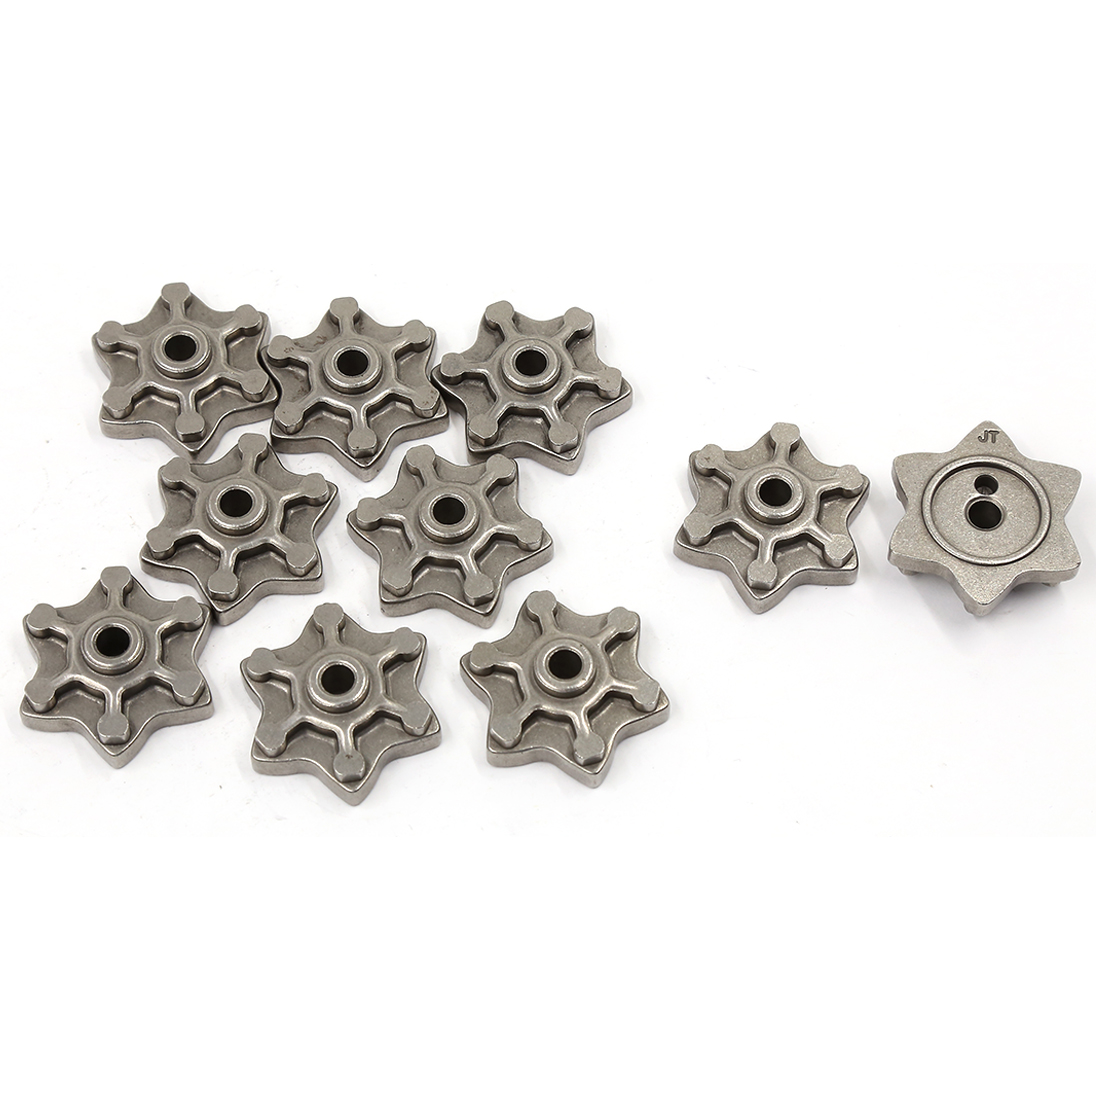 10 Pcs Gray Metal Six Angle Star Shaped Motorcycle Engine Speed Gear for CG125